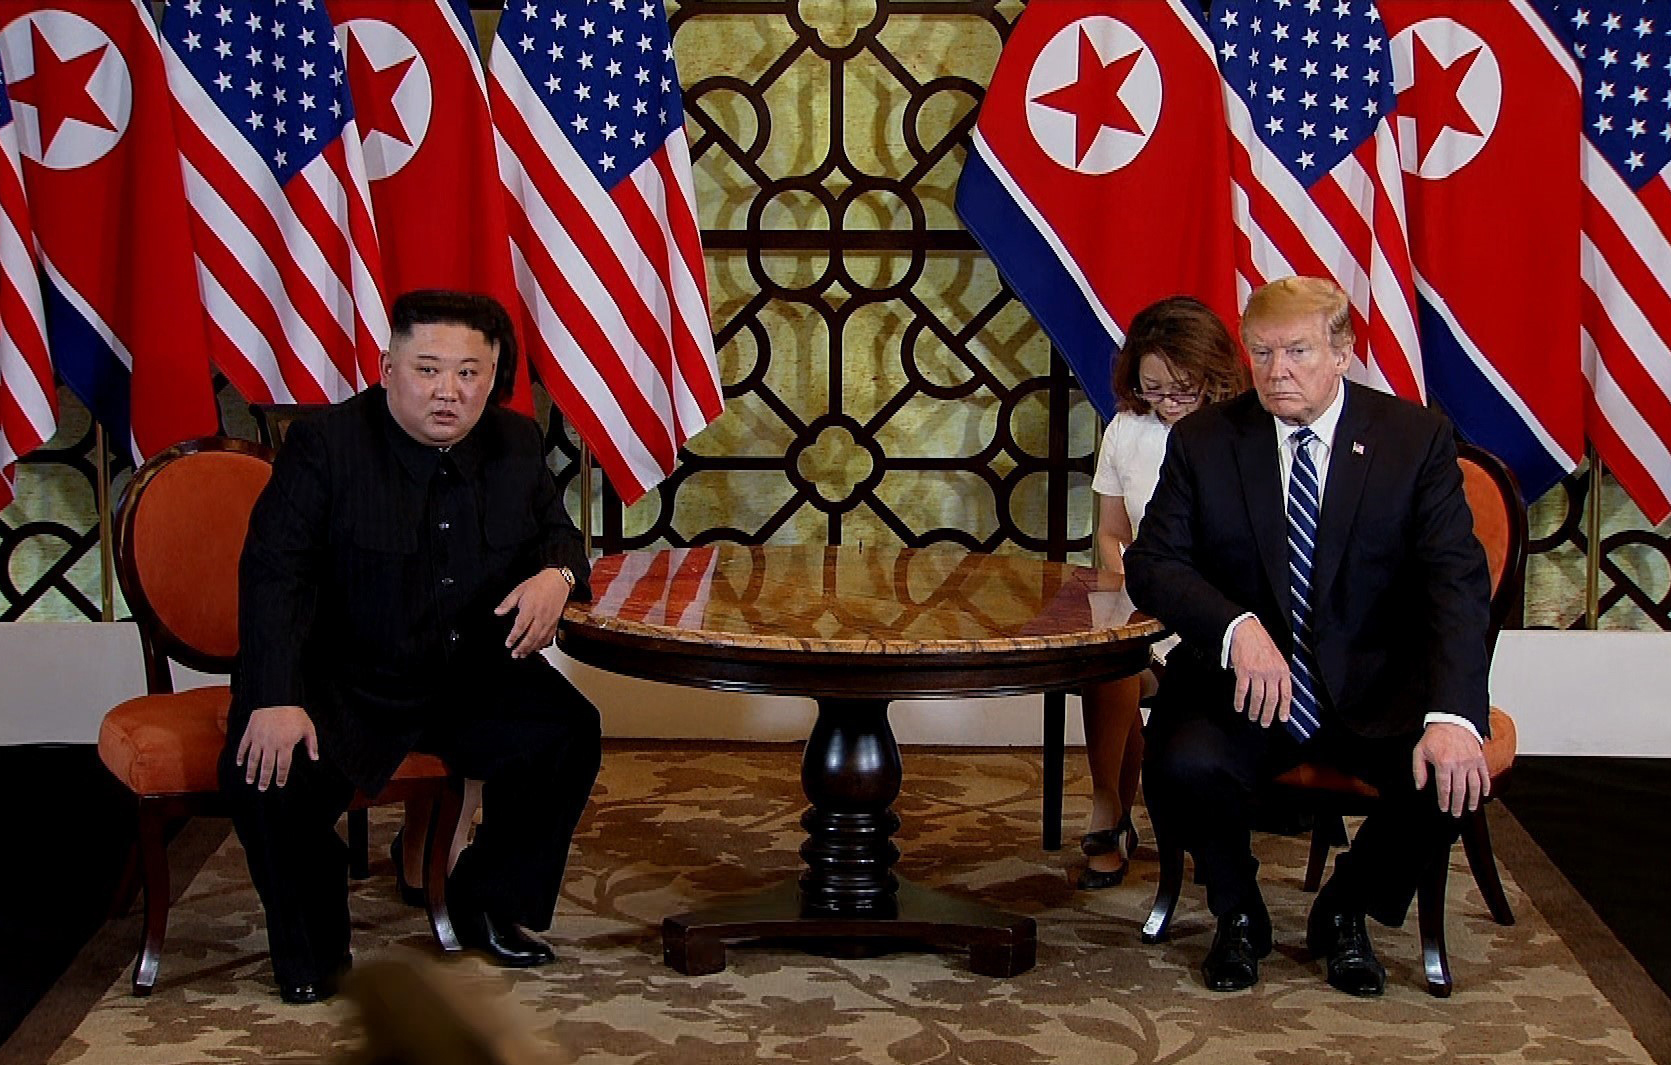 Kim and Trump during their second summit meeting at the Sofitel Legend Metropole hotel on February 28, 2019 in Hanoi, Vietnam.